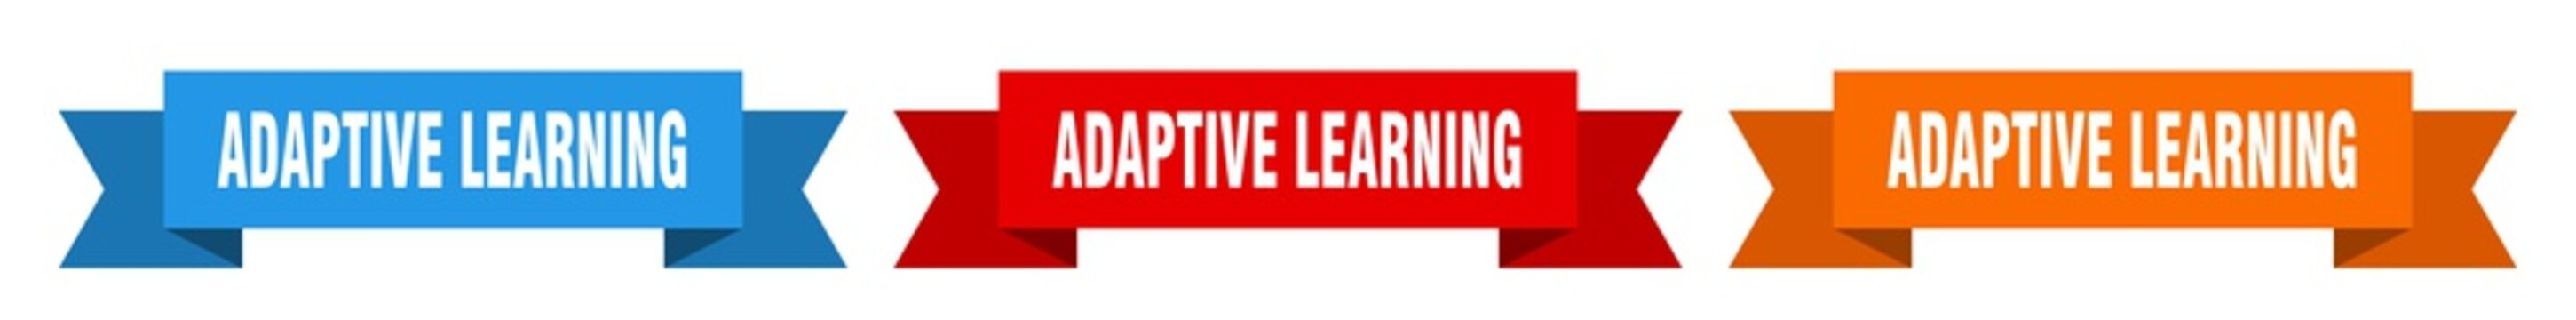 adaptive learning ribbon. adaptive learning isolated paper sign. banner